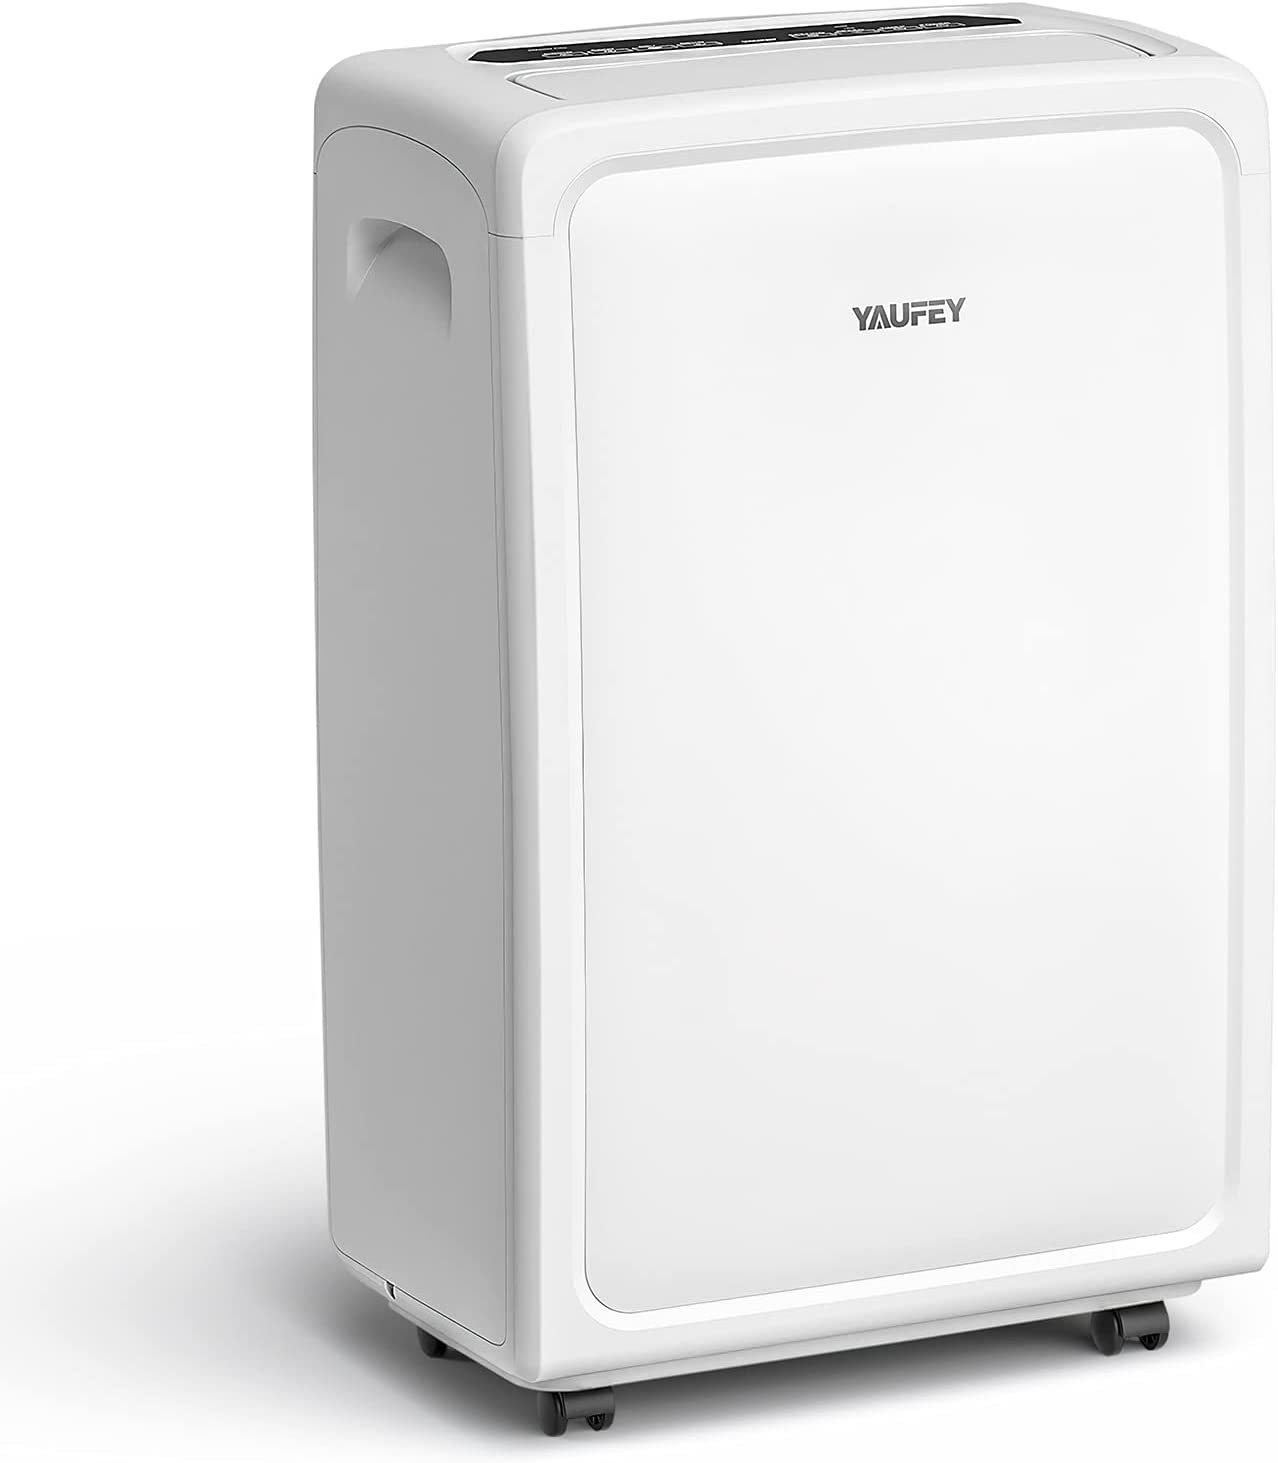 Yaufey Max 74% OFF 4500 Sq. Ft Home Dehumidifier Basement Larg Manufacturer direct delivery and Extra for